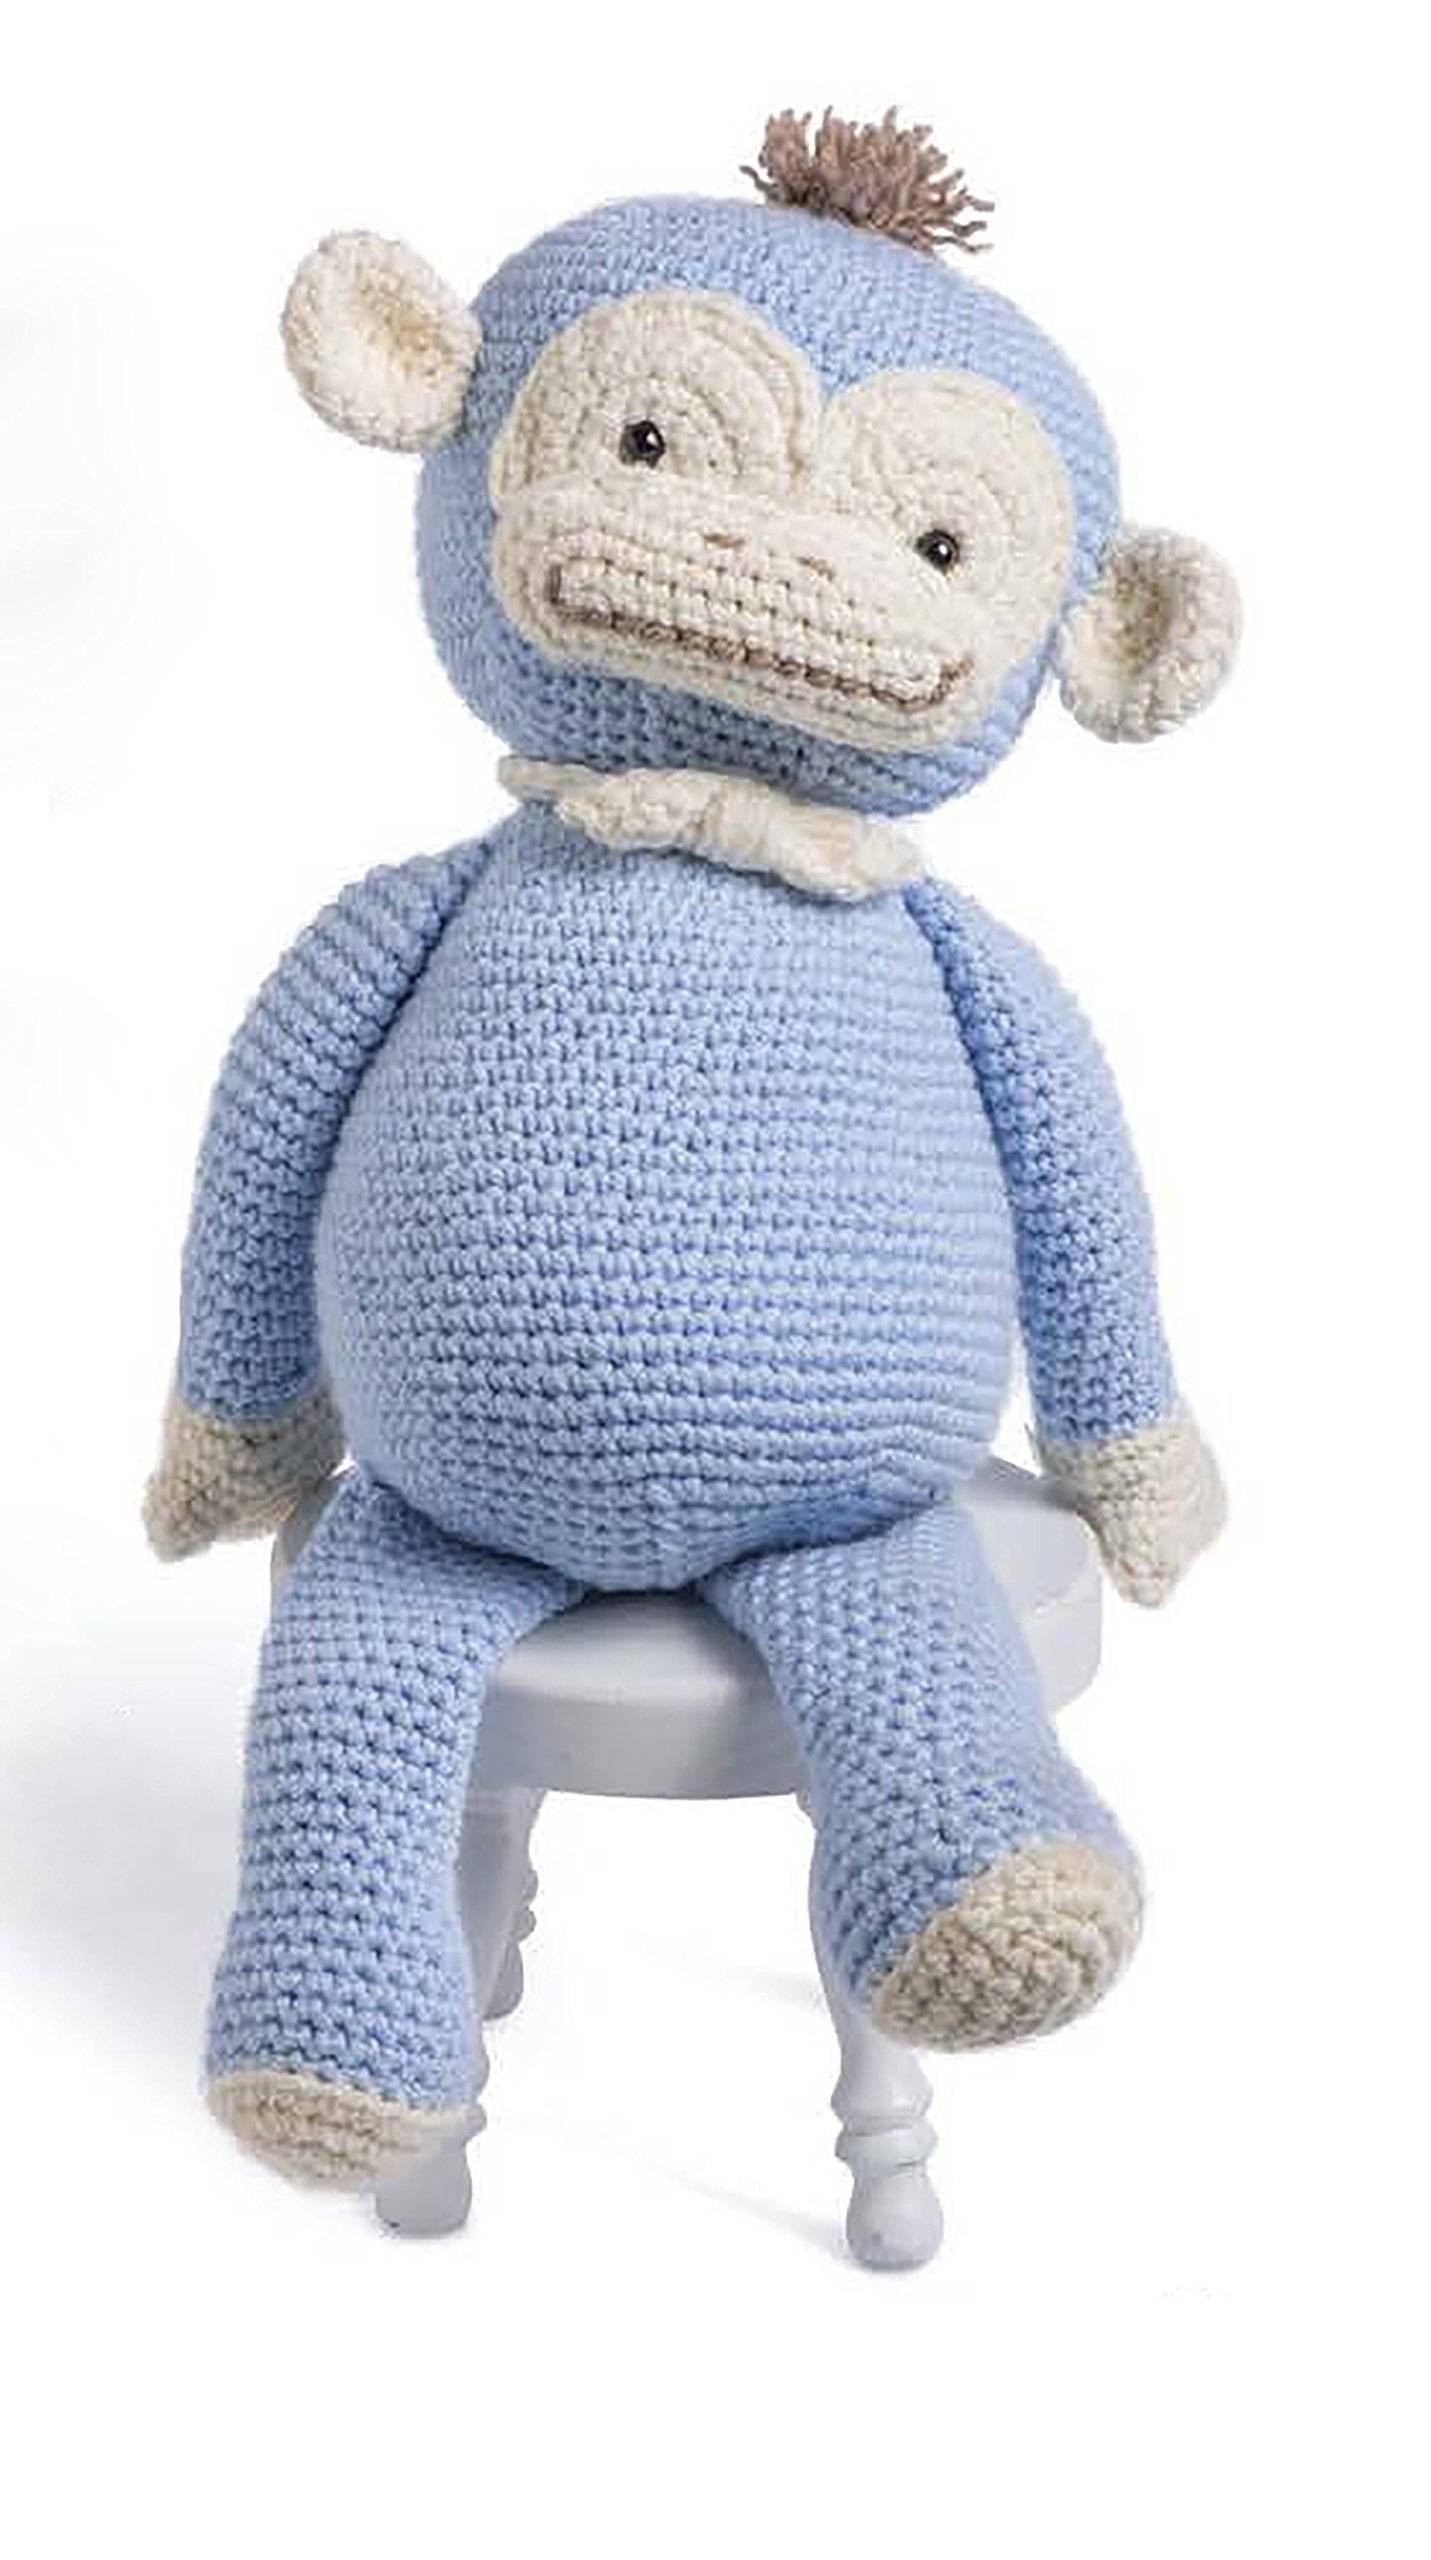 Huggable Amigurumi Crochet Leisure Arts 7163 Kristi Simpson